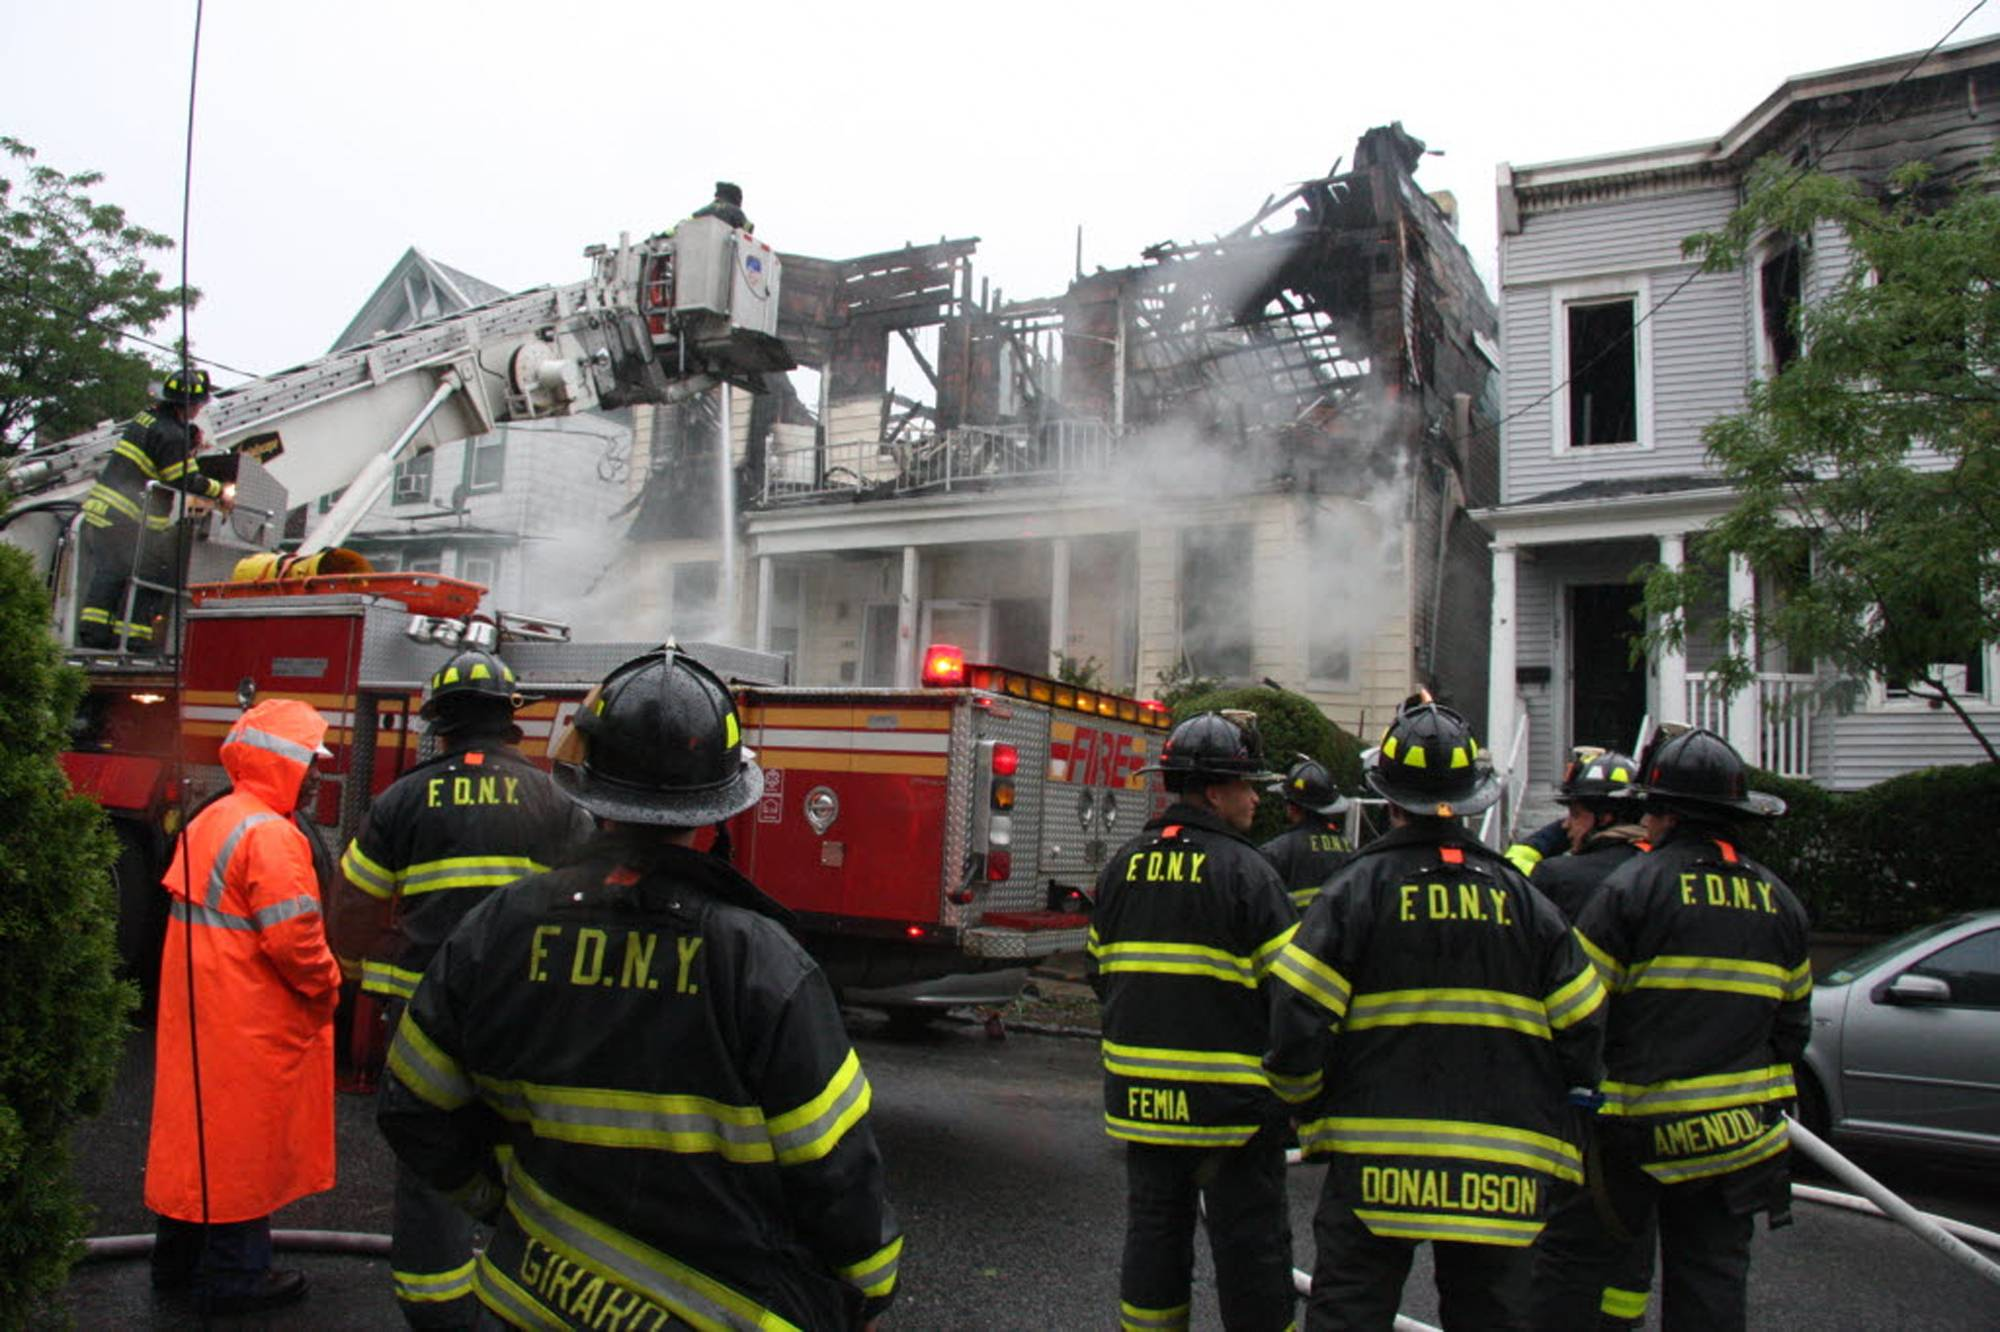 Firefighters continue working the scene of a fire that tore through three townhouses on New York City's Staten Island early Thursday, June 5, 2014.